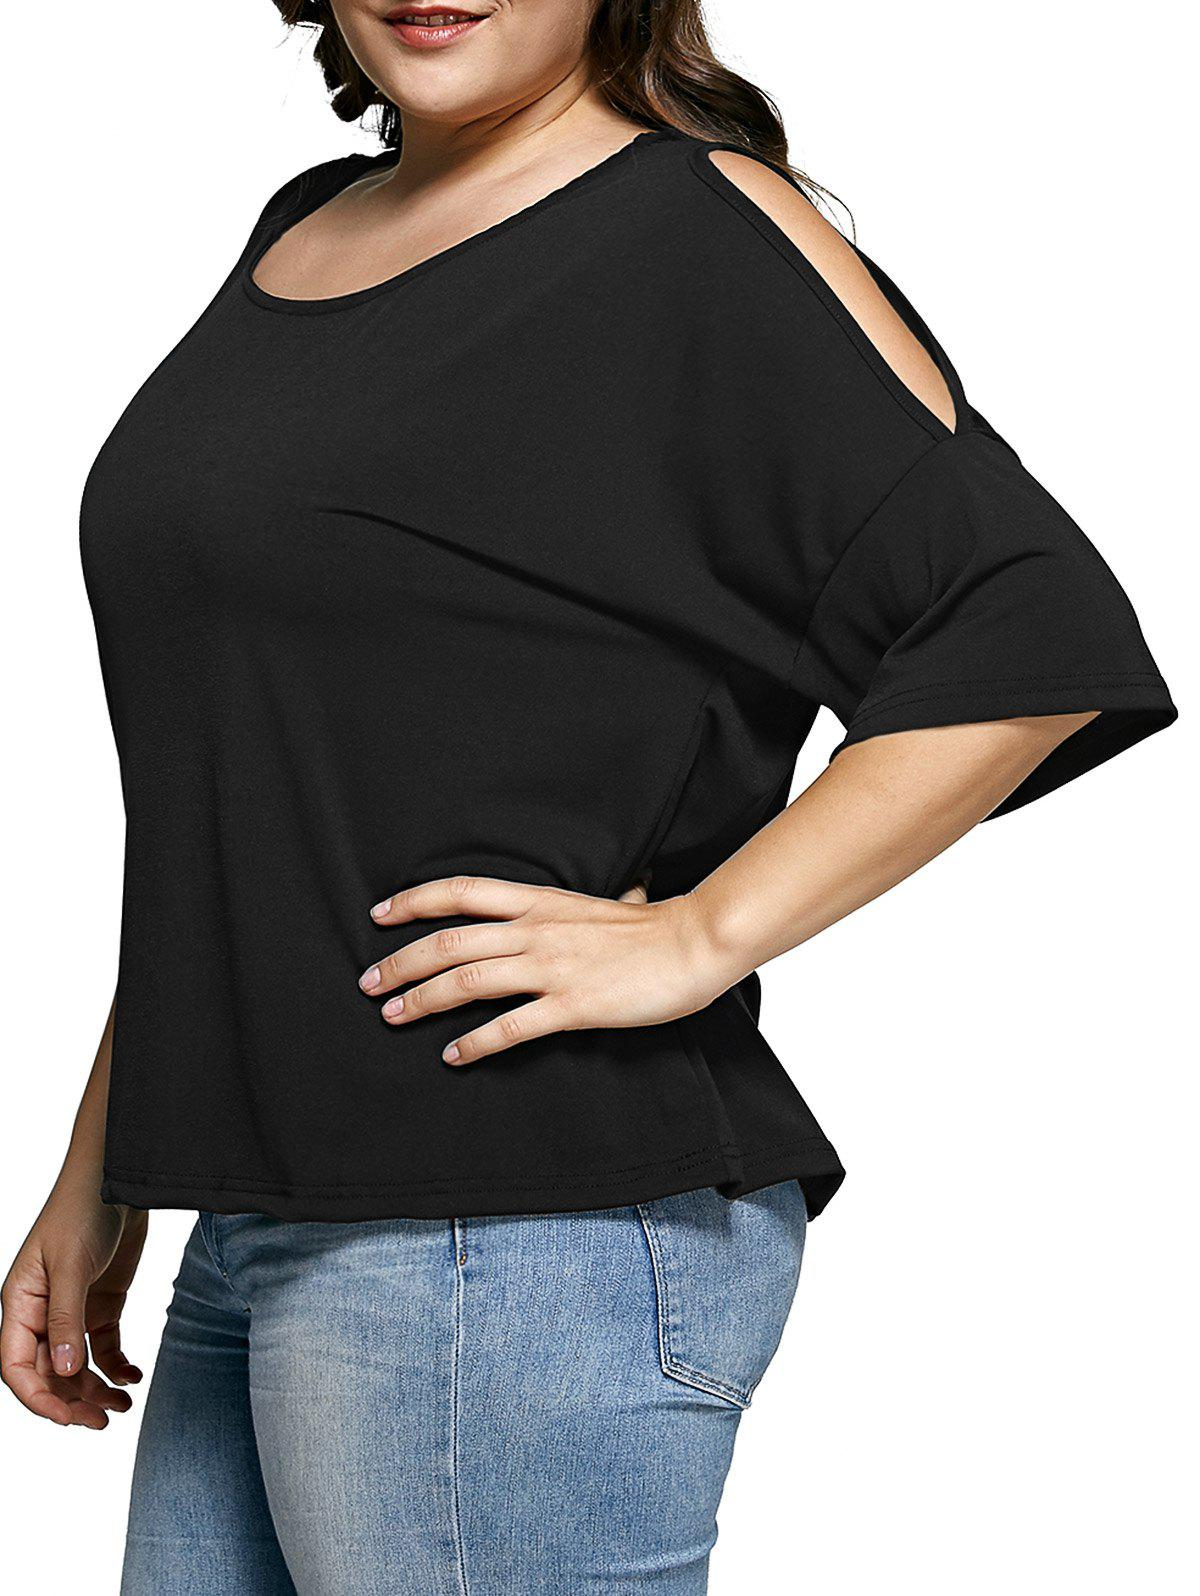 Plus Size Cold Shoulder Black T-Shirt - BLACK 5XL